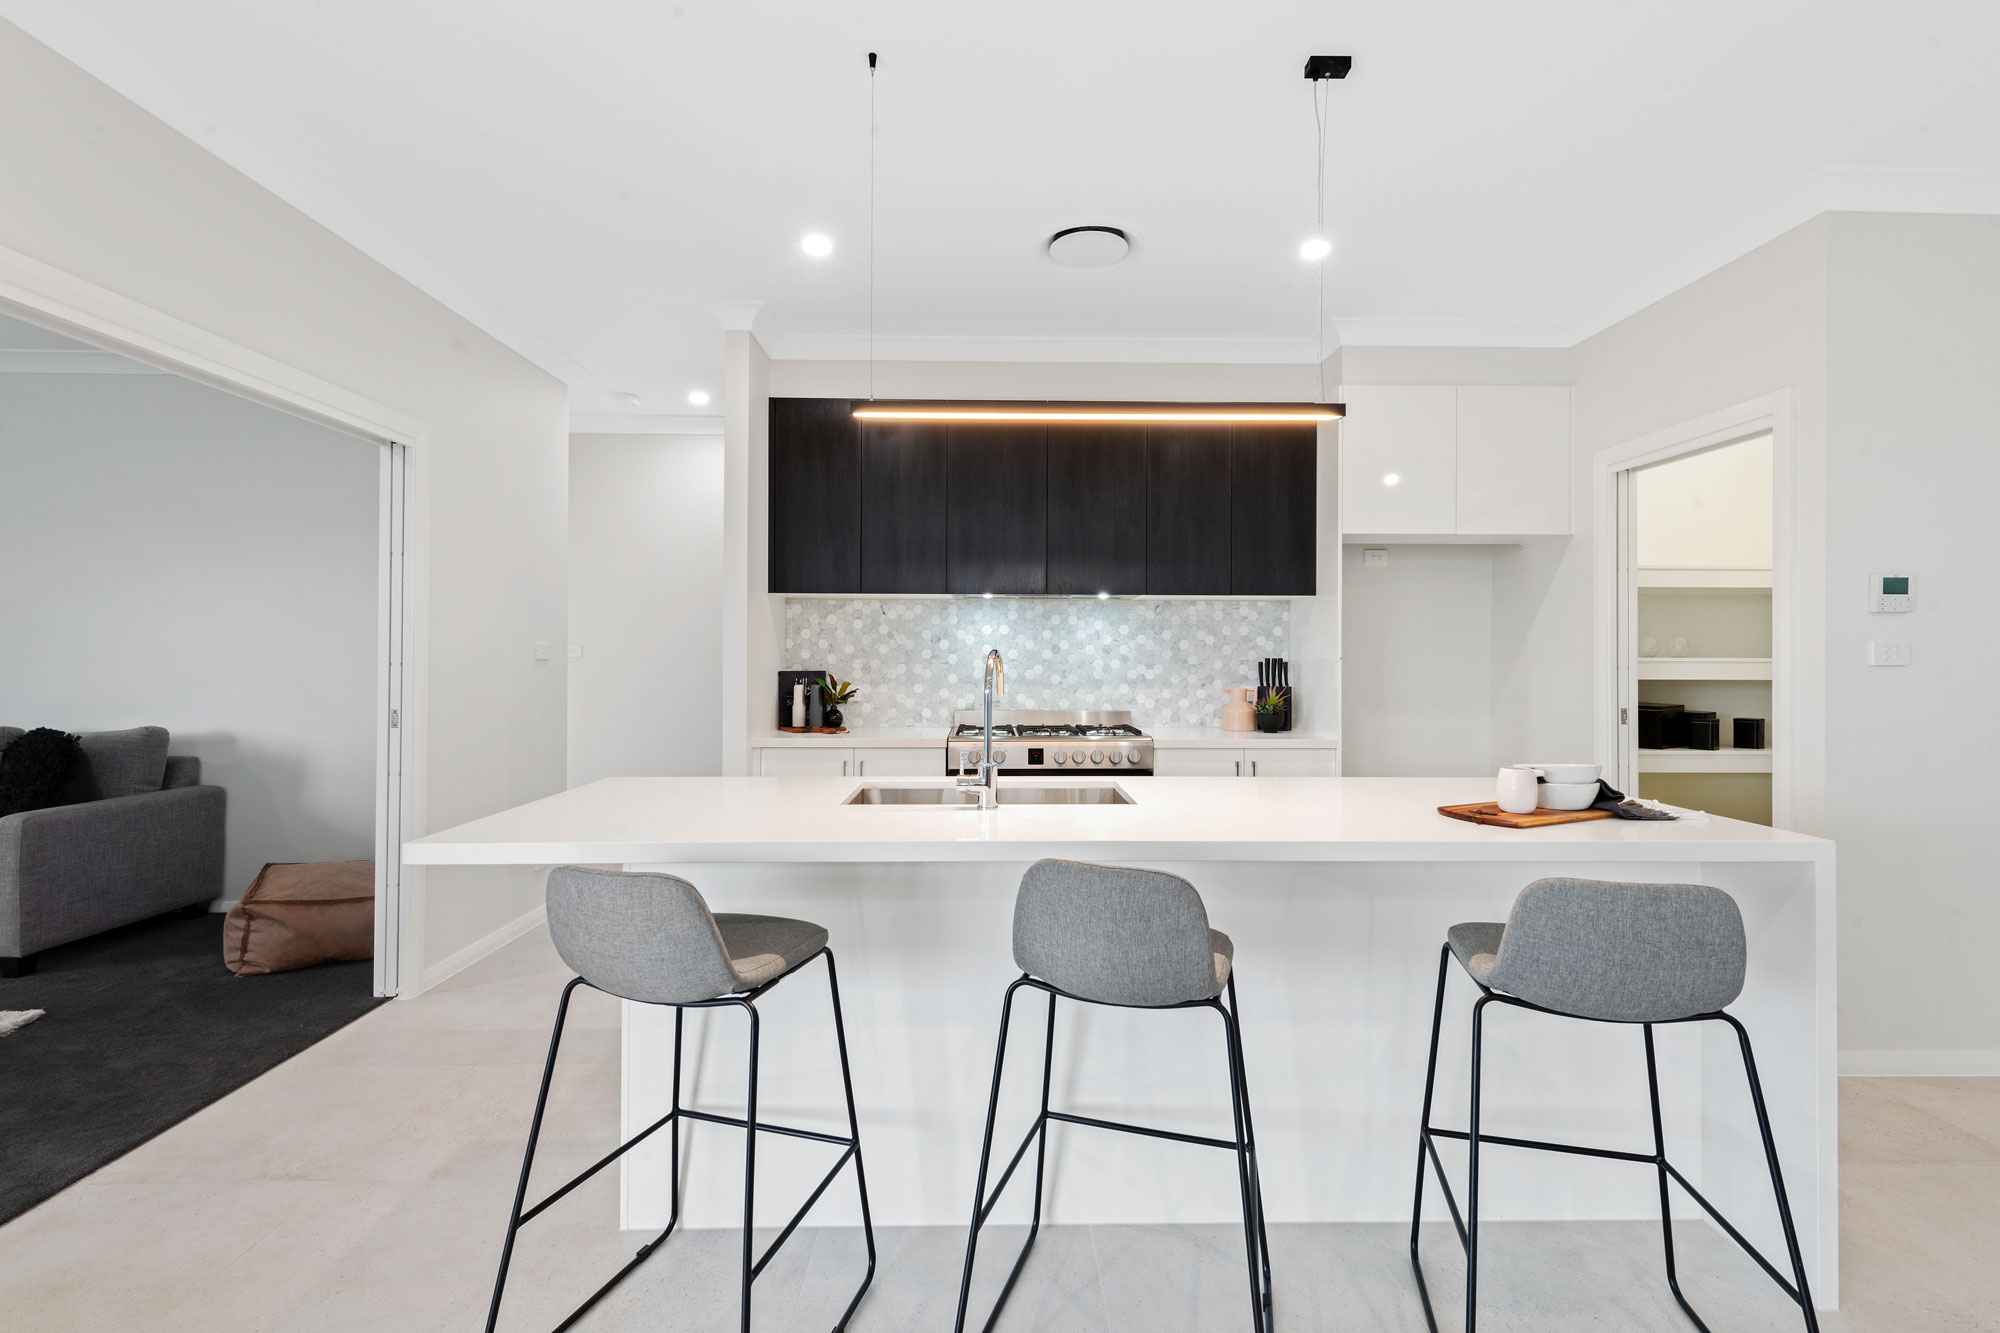 Modern Kitchen with 40mm Thick Stone Benchtop